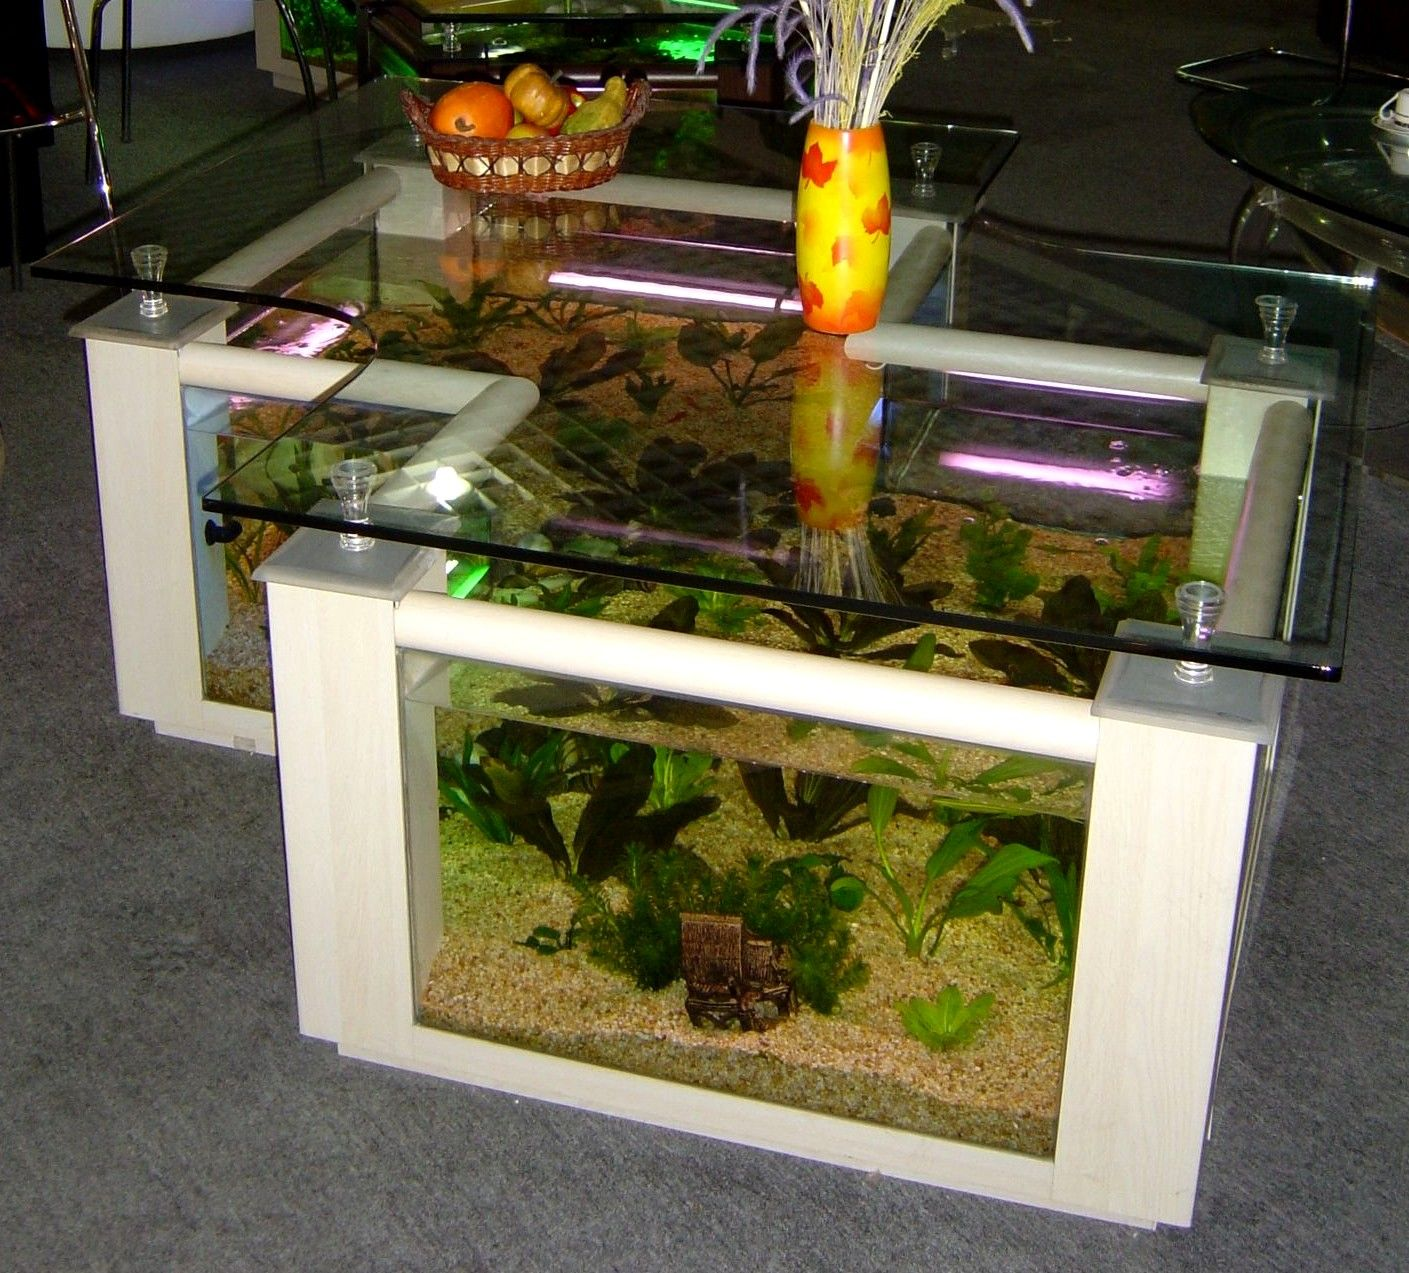 Amazing 40 Modern Creative Coffee Tables : 40 Modern Creative Coffee Tables  With Glass Table And Built In Aquarium And Lighting Decoration - How To Build A Wooden Terrarium Table - Http://outdoor.theopencase